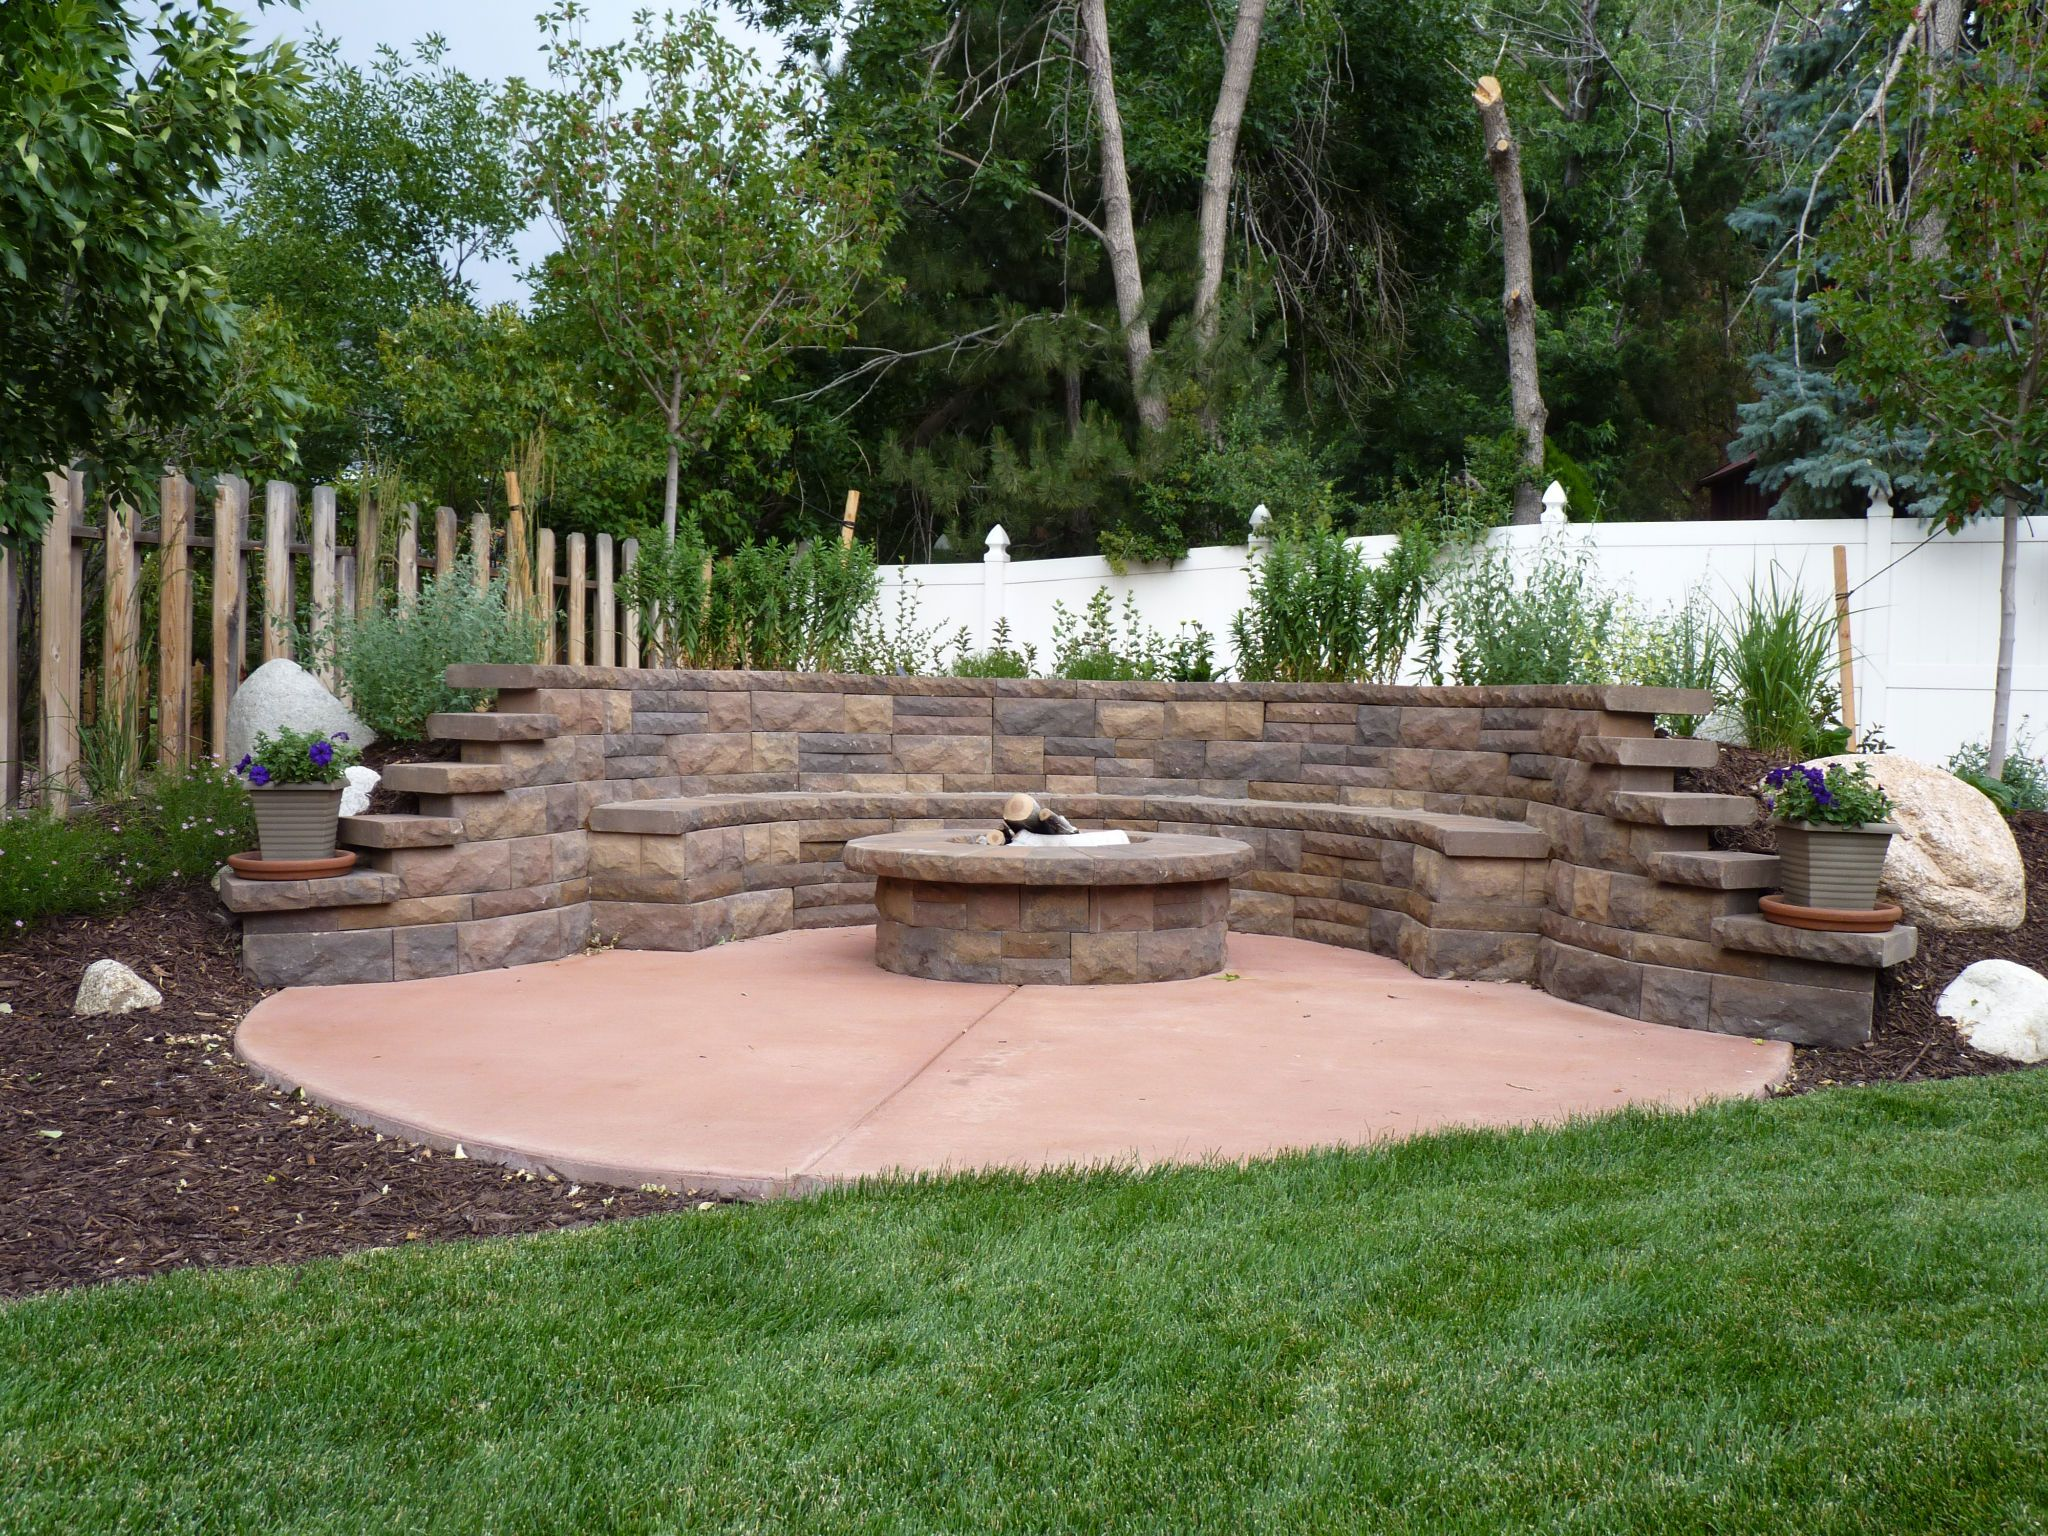 pin by lindsey smith on yard garden fire pit outdoor on backyard fire pit landscaping id=64889